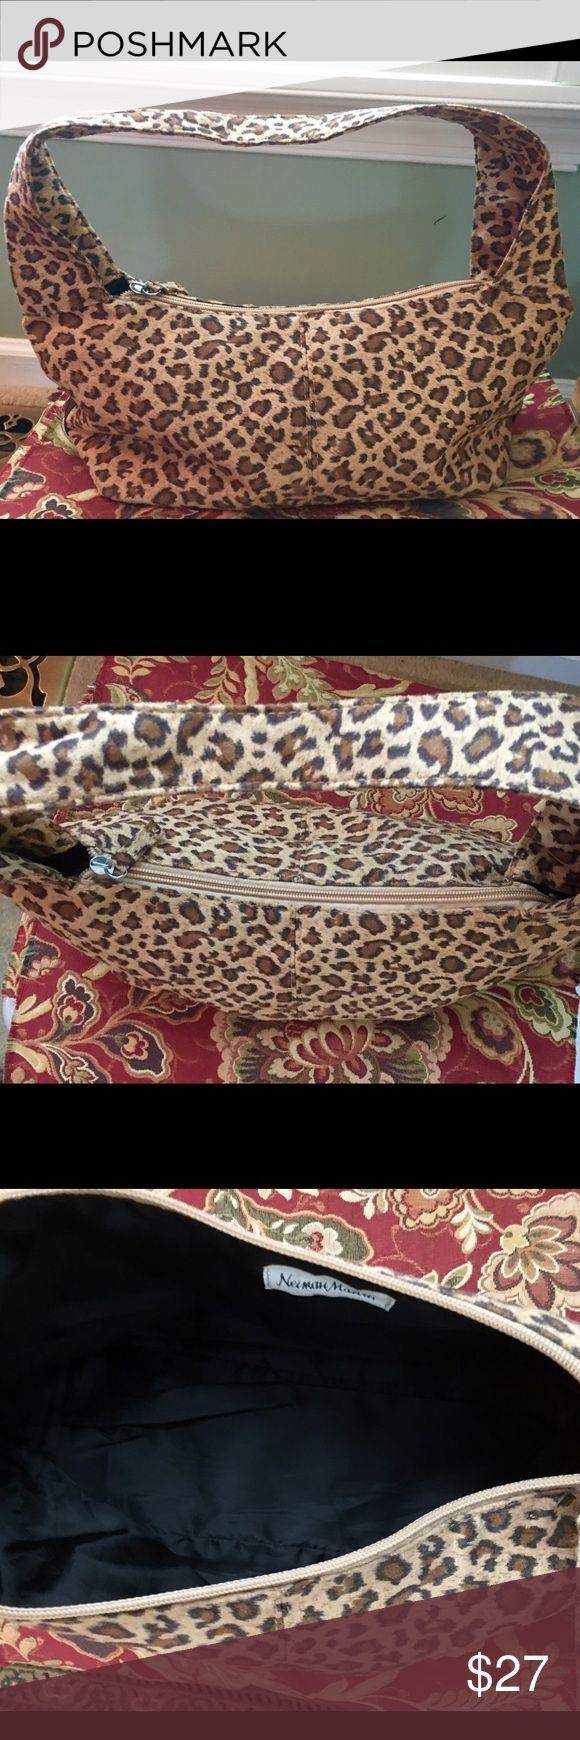 Final Sale-Neiman Marcus animal print hobo Neiman Marcus suede-like animal print hobo bag. Used once, too small for me. In great condition. Roughly 9x5x5. Zipper closure. ***FINAL  SALE*** Neiman Marcus Bags Hobos